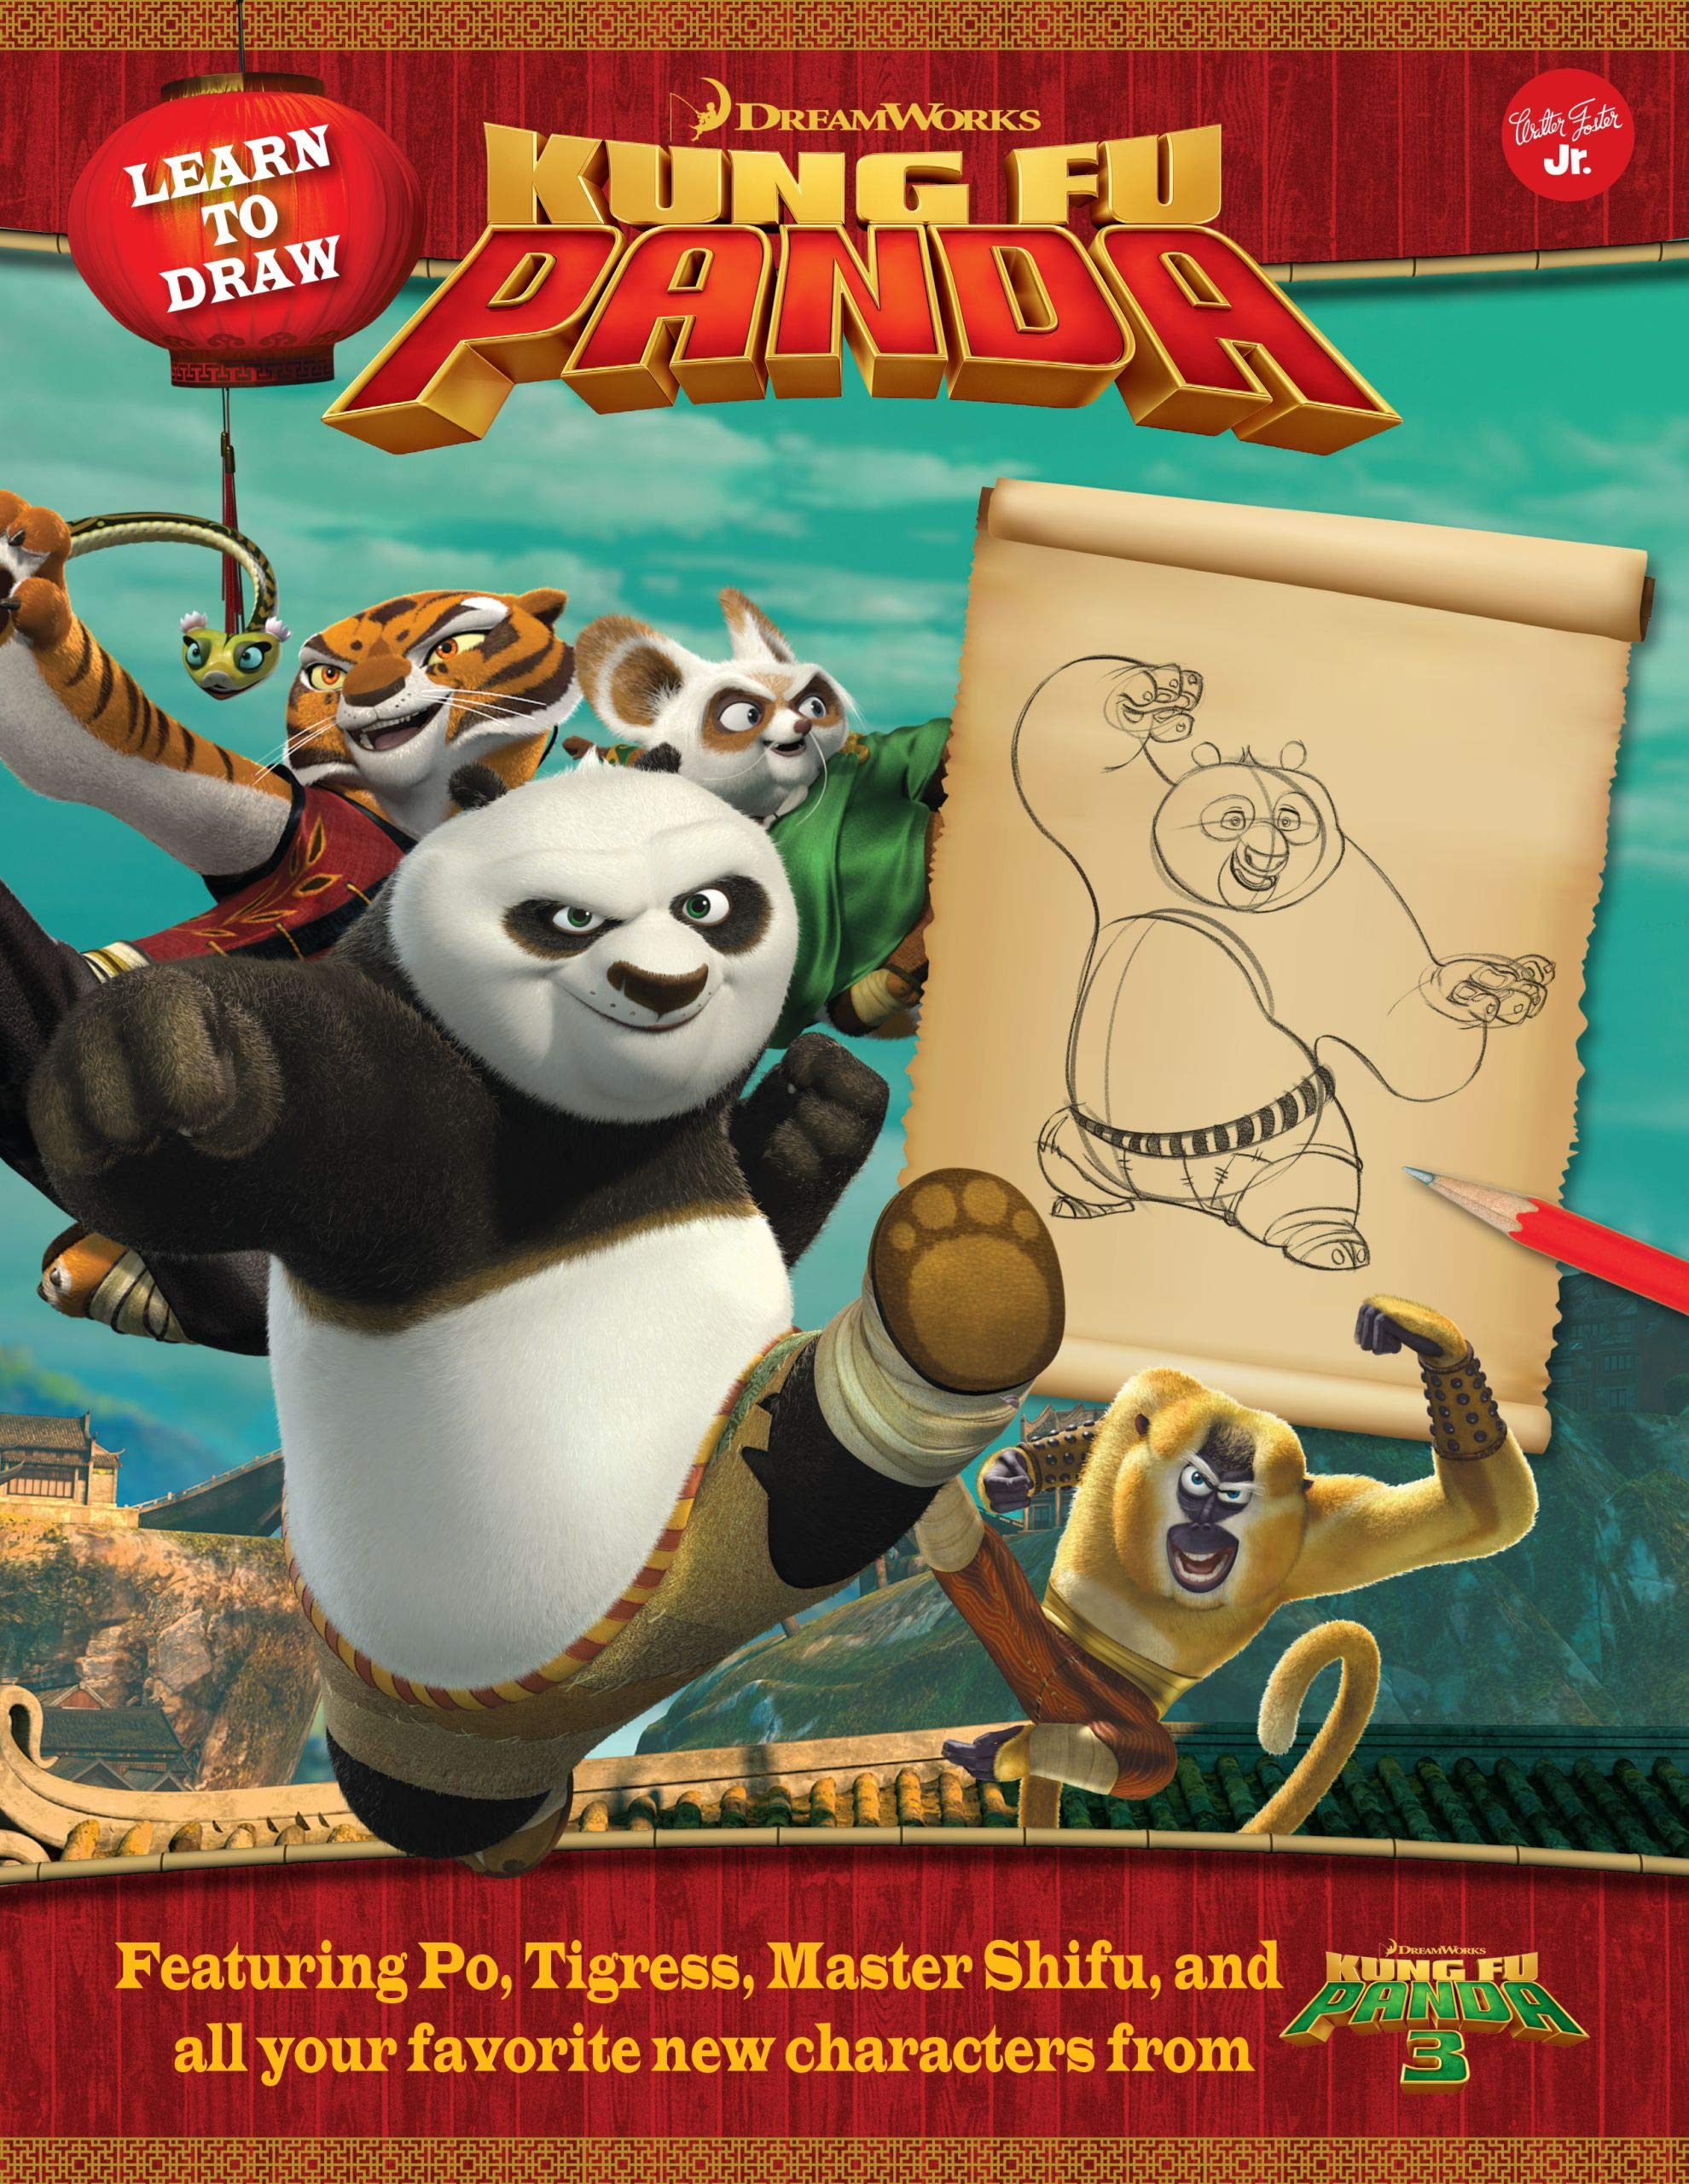 Learn To Draw Dreamworks Animation S Kung Fu Panda Featuring Po Tigress Master Shifu And All Your Favorite New Characters From Kung Fu Panda 3 Draw Favorite Characters Expanded Edition Dreamworks Animation